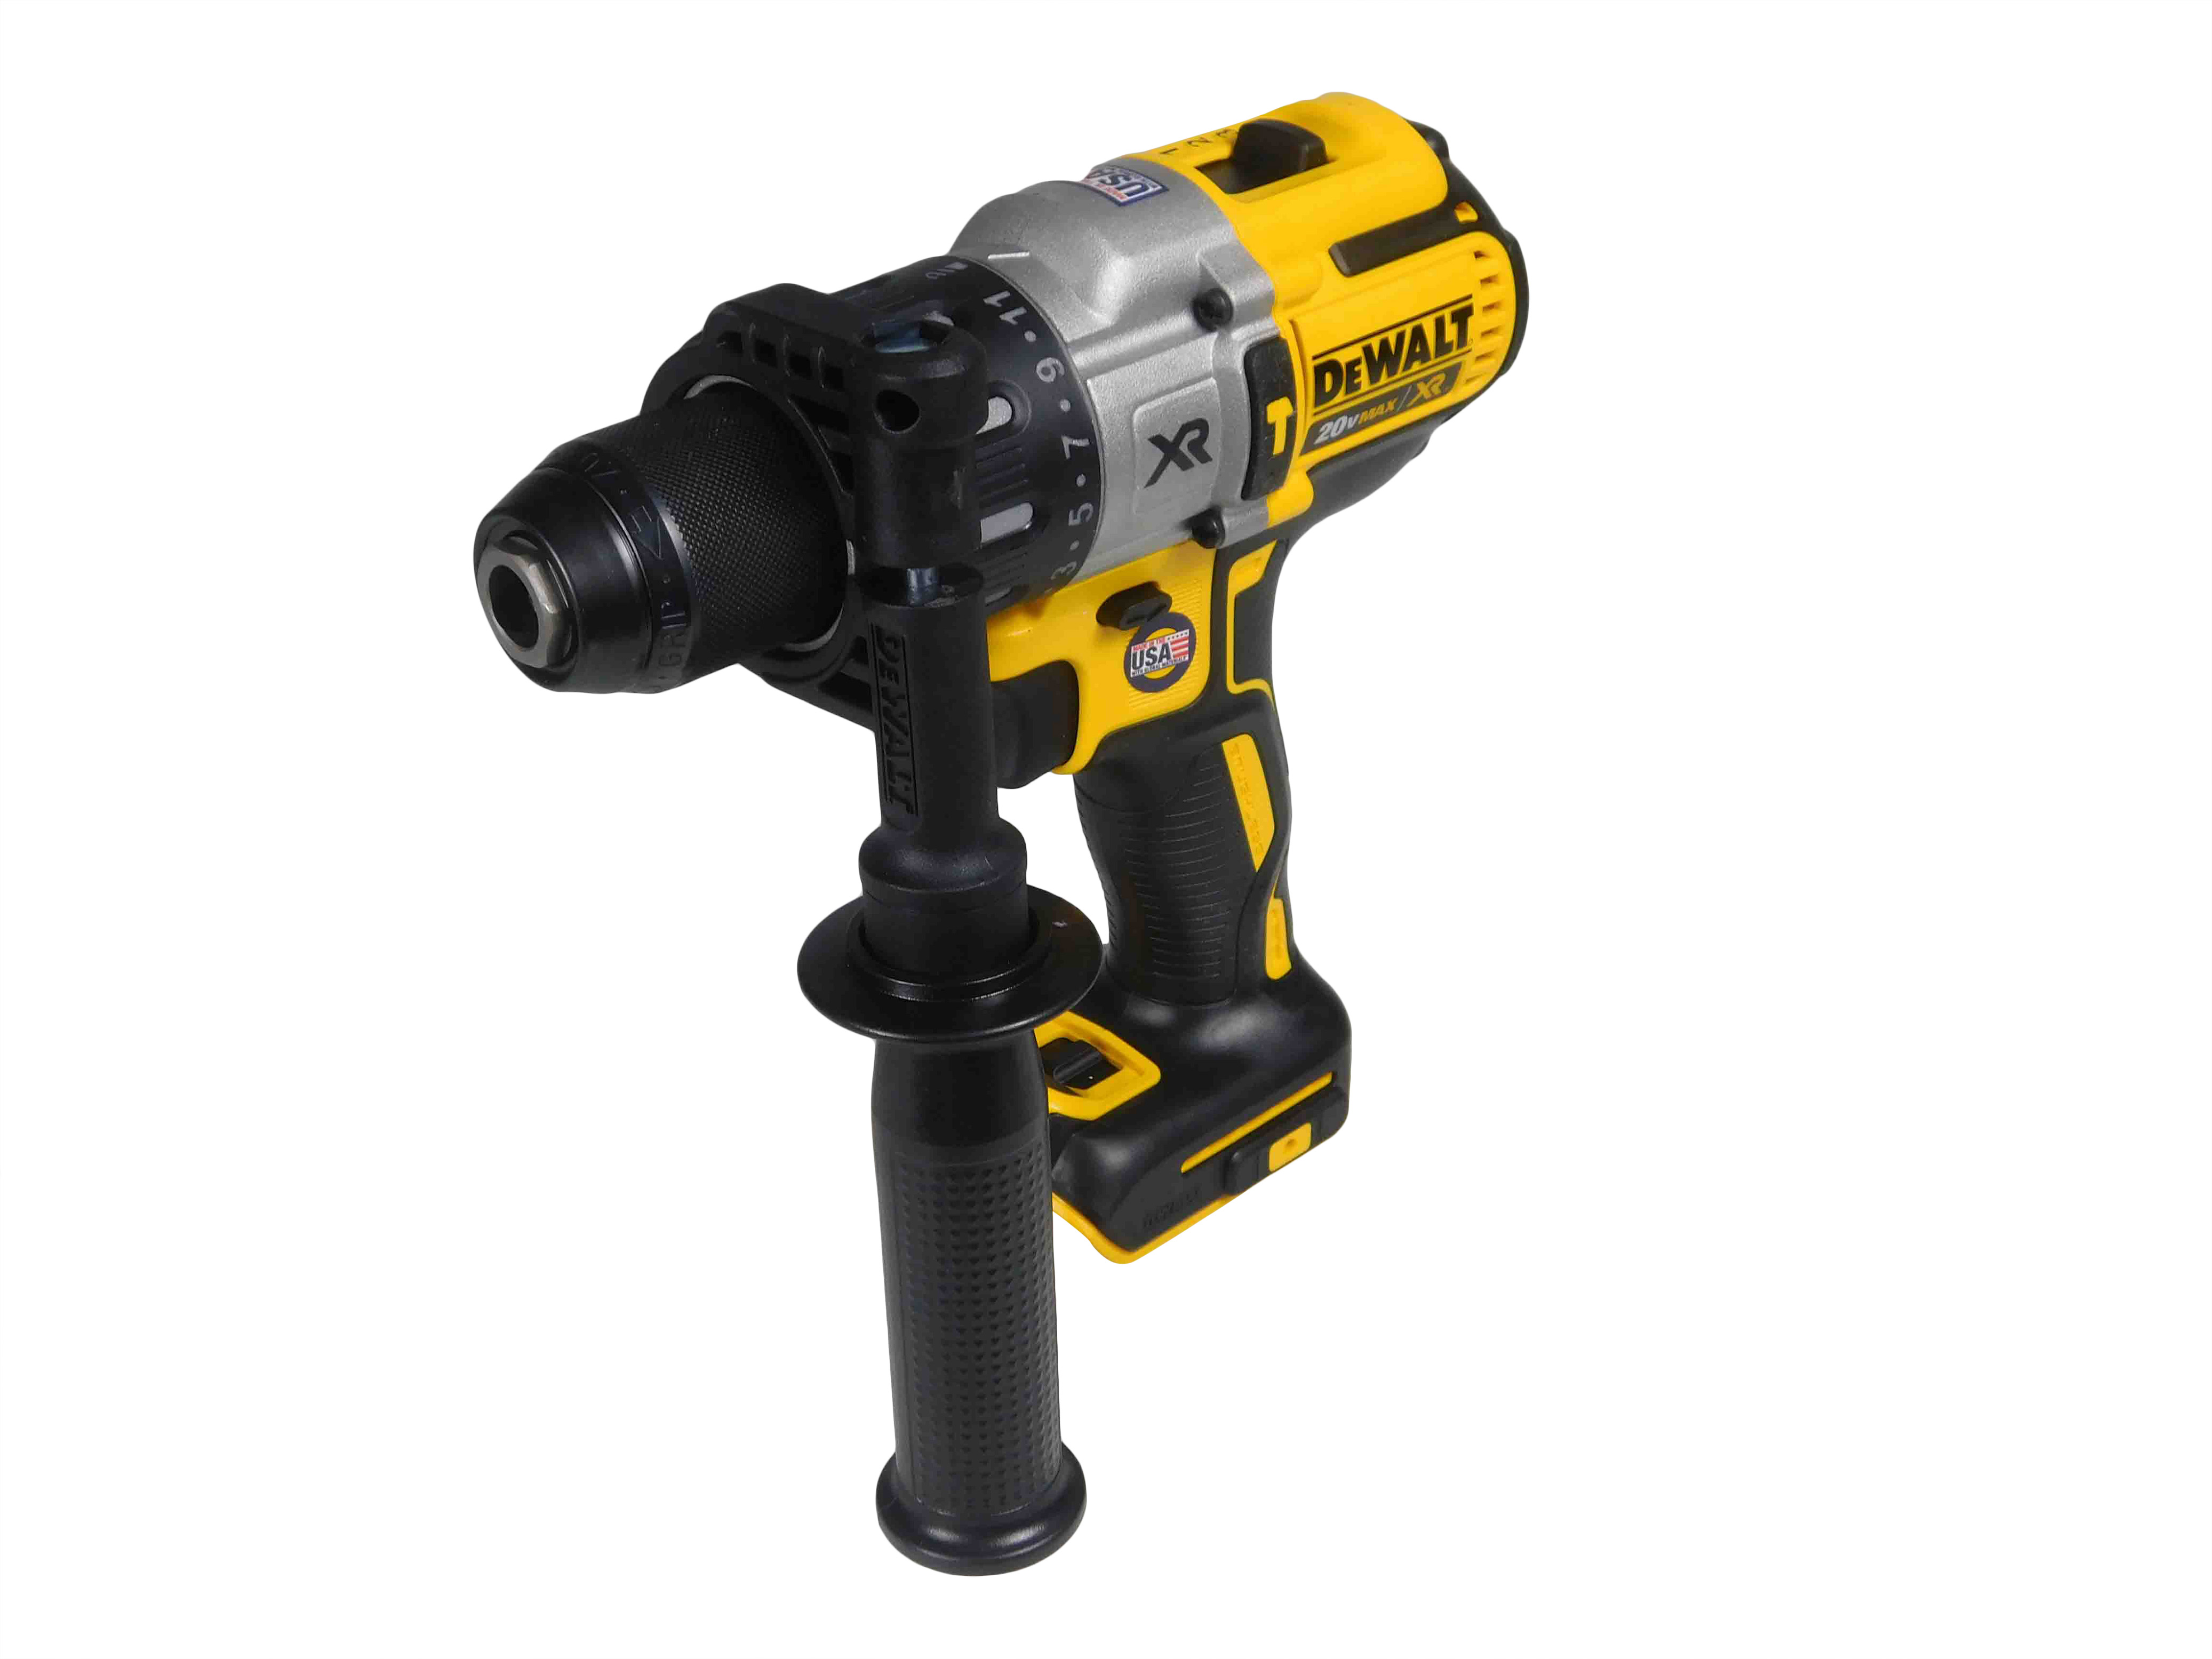 DEWALT-DCD996B-20V-MAX-Li-Ion-1-2inch-3-Speed-Brushless-Hammer-Drill-image-3